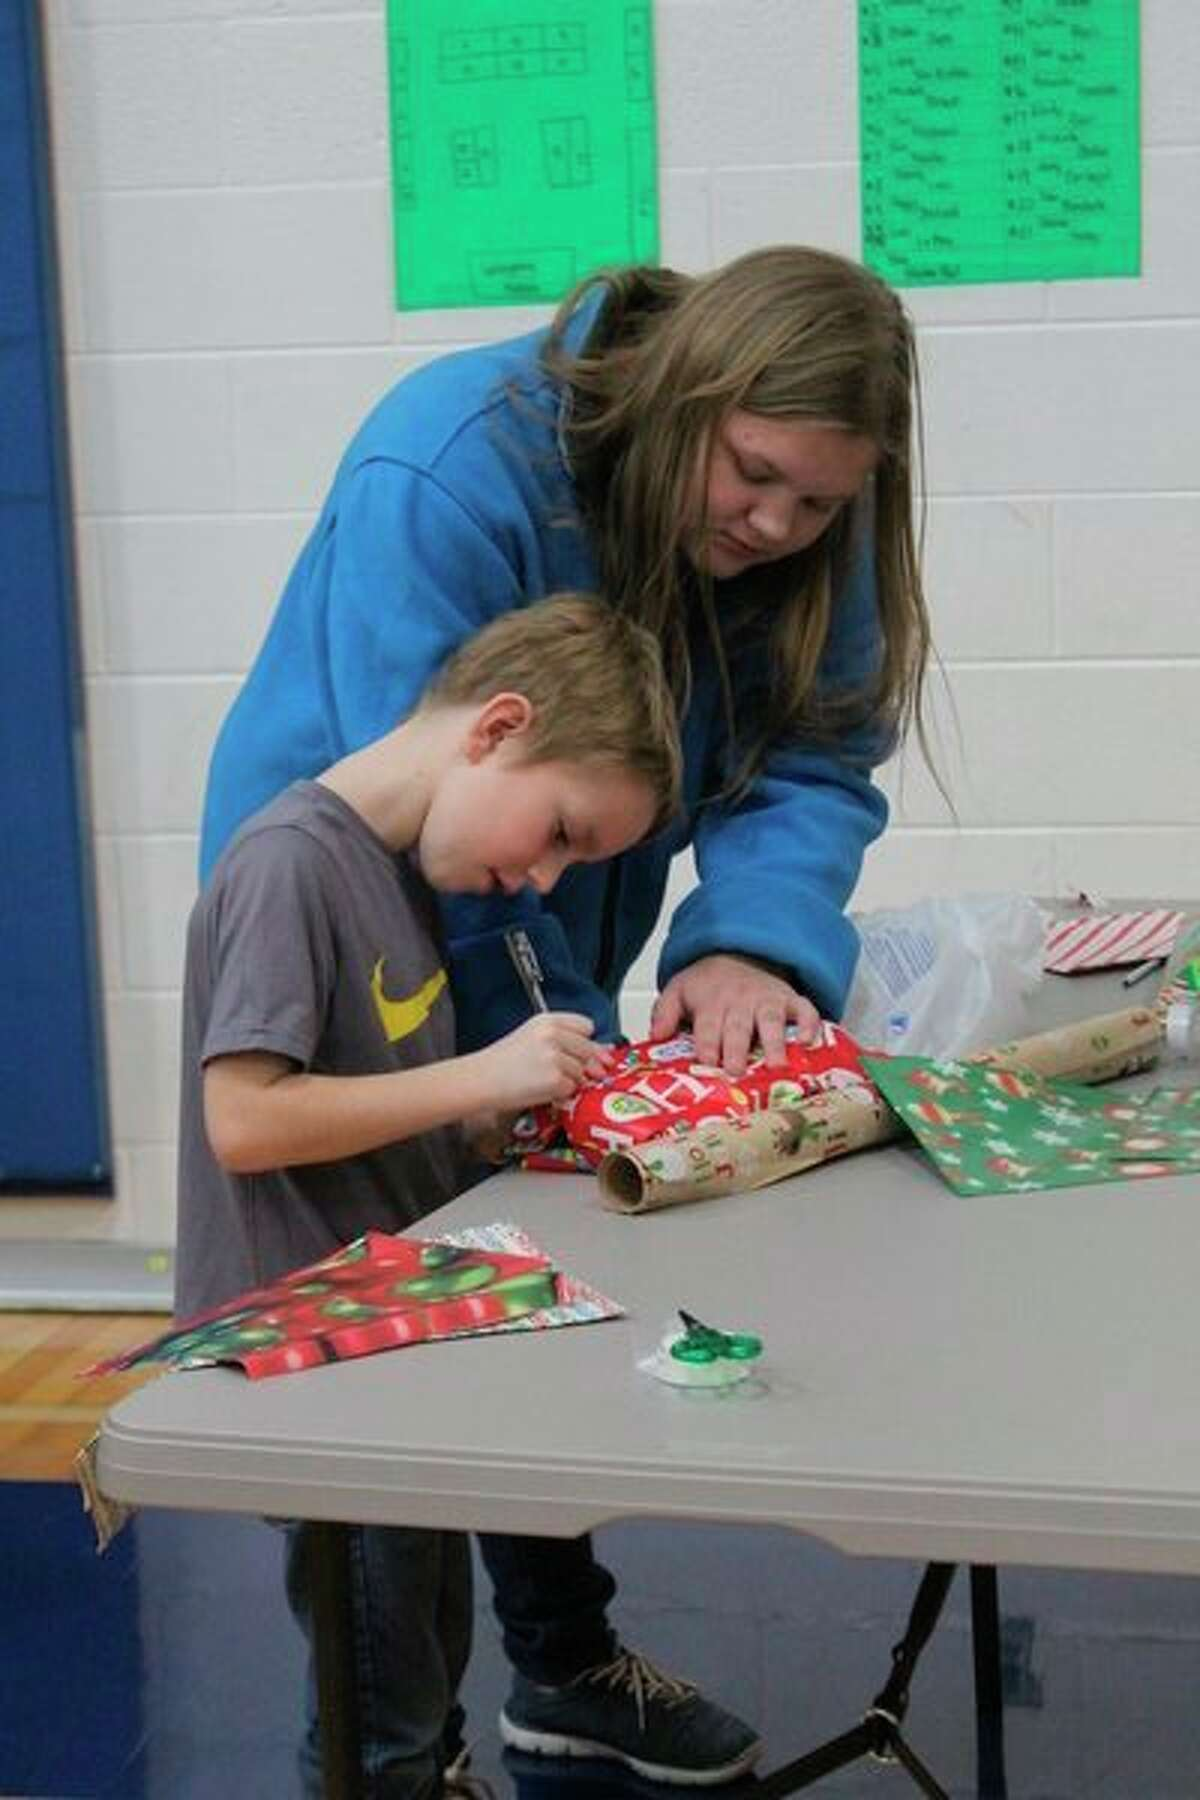 In one area of the gym, students gathered to get help writing their names on gift tags. (Pioneer photo/Catherine Sweeney)